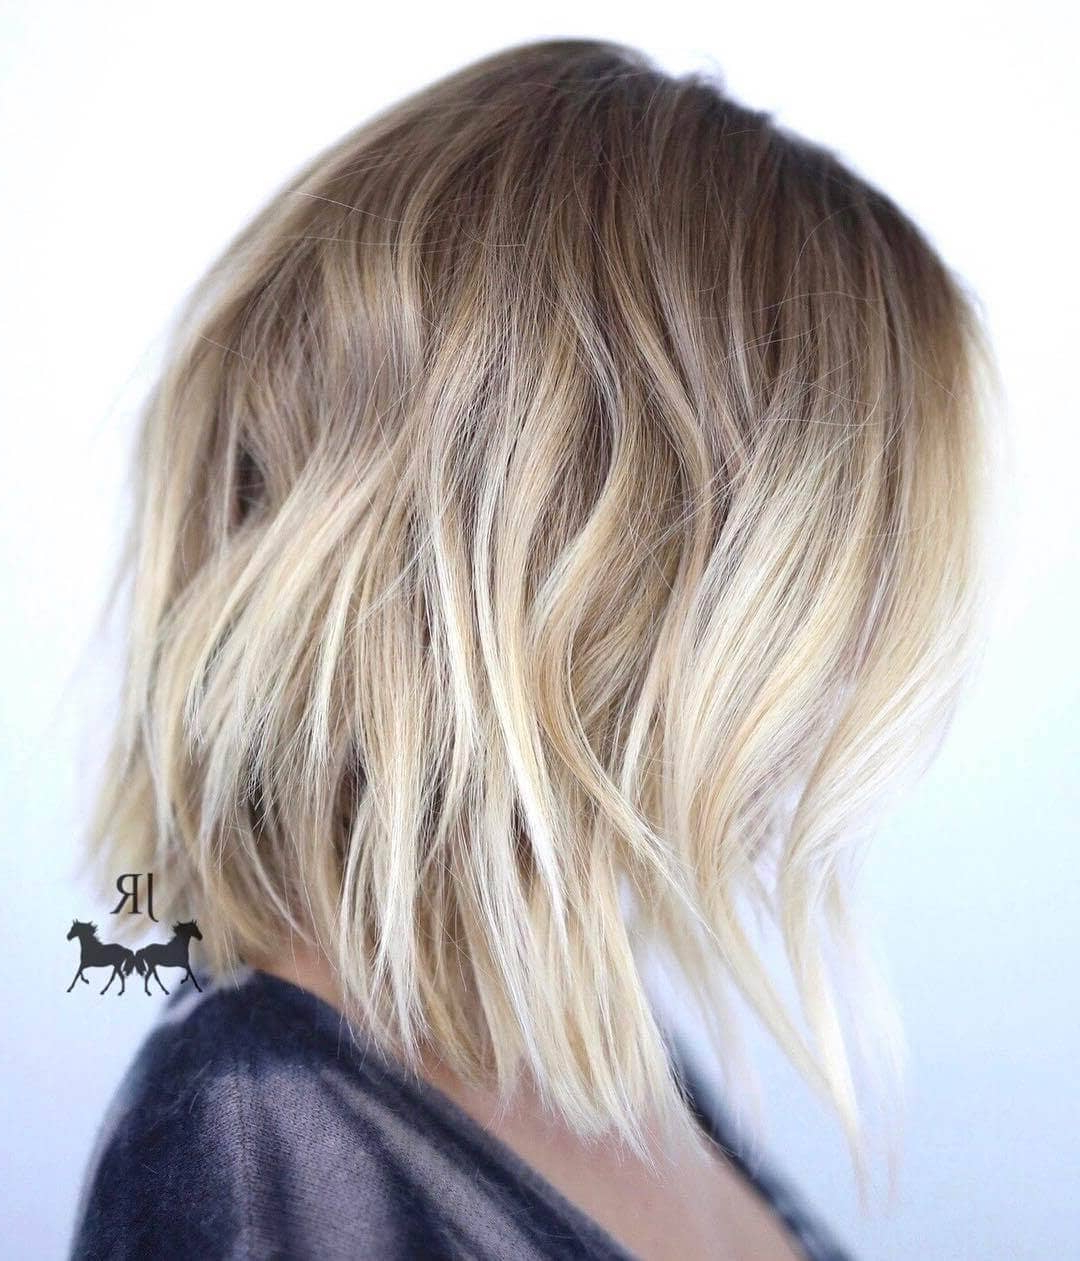 50 Fresh Short Blonde Hair Ideas To Update Your Style In 2018 Within White Blonde Curly Layered Bob Hairstyles (View 13 of 25)